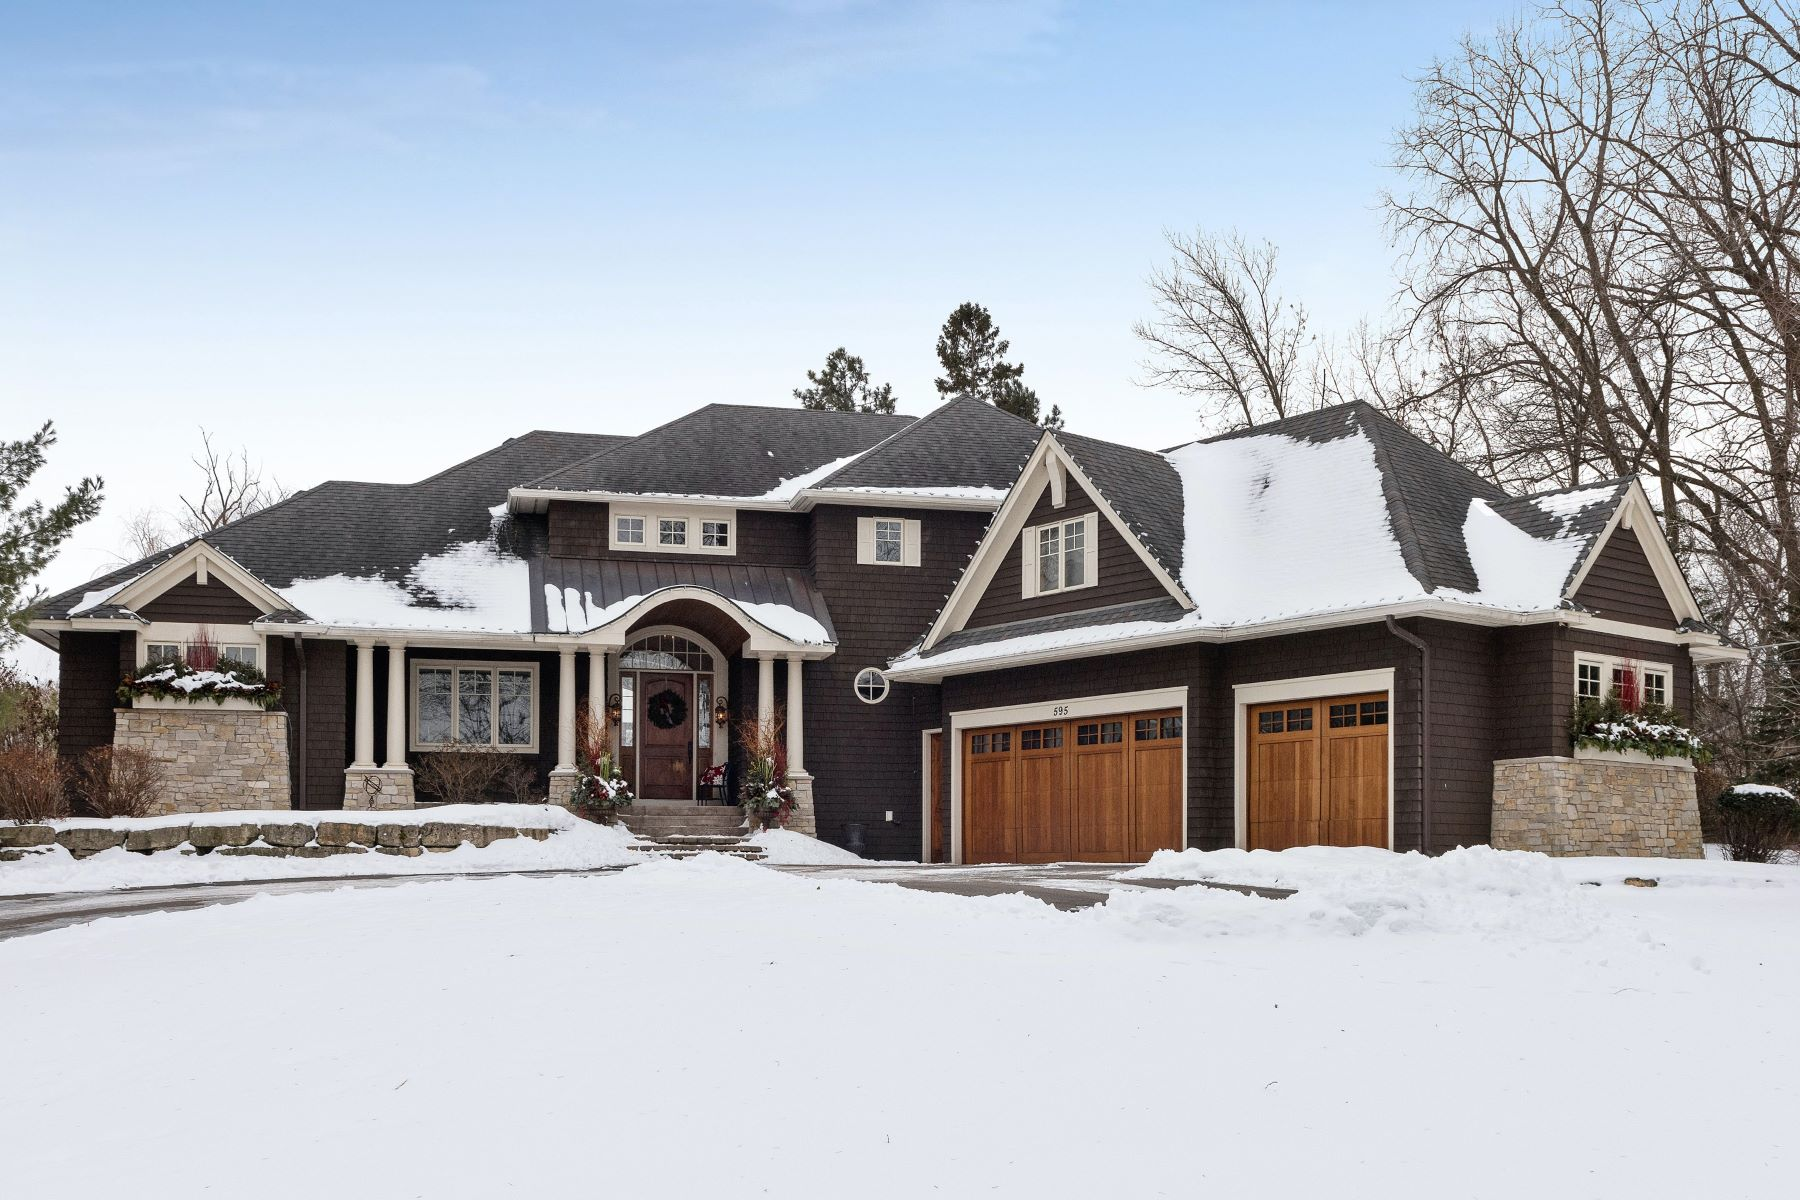 Single Family Homes for Sale at Elegant Home Built by Pillar Homes Sits on 1.6 Acres in Wayzata 595 Far Hill Road Wayzata, Minnesota 55391 United States